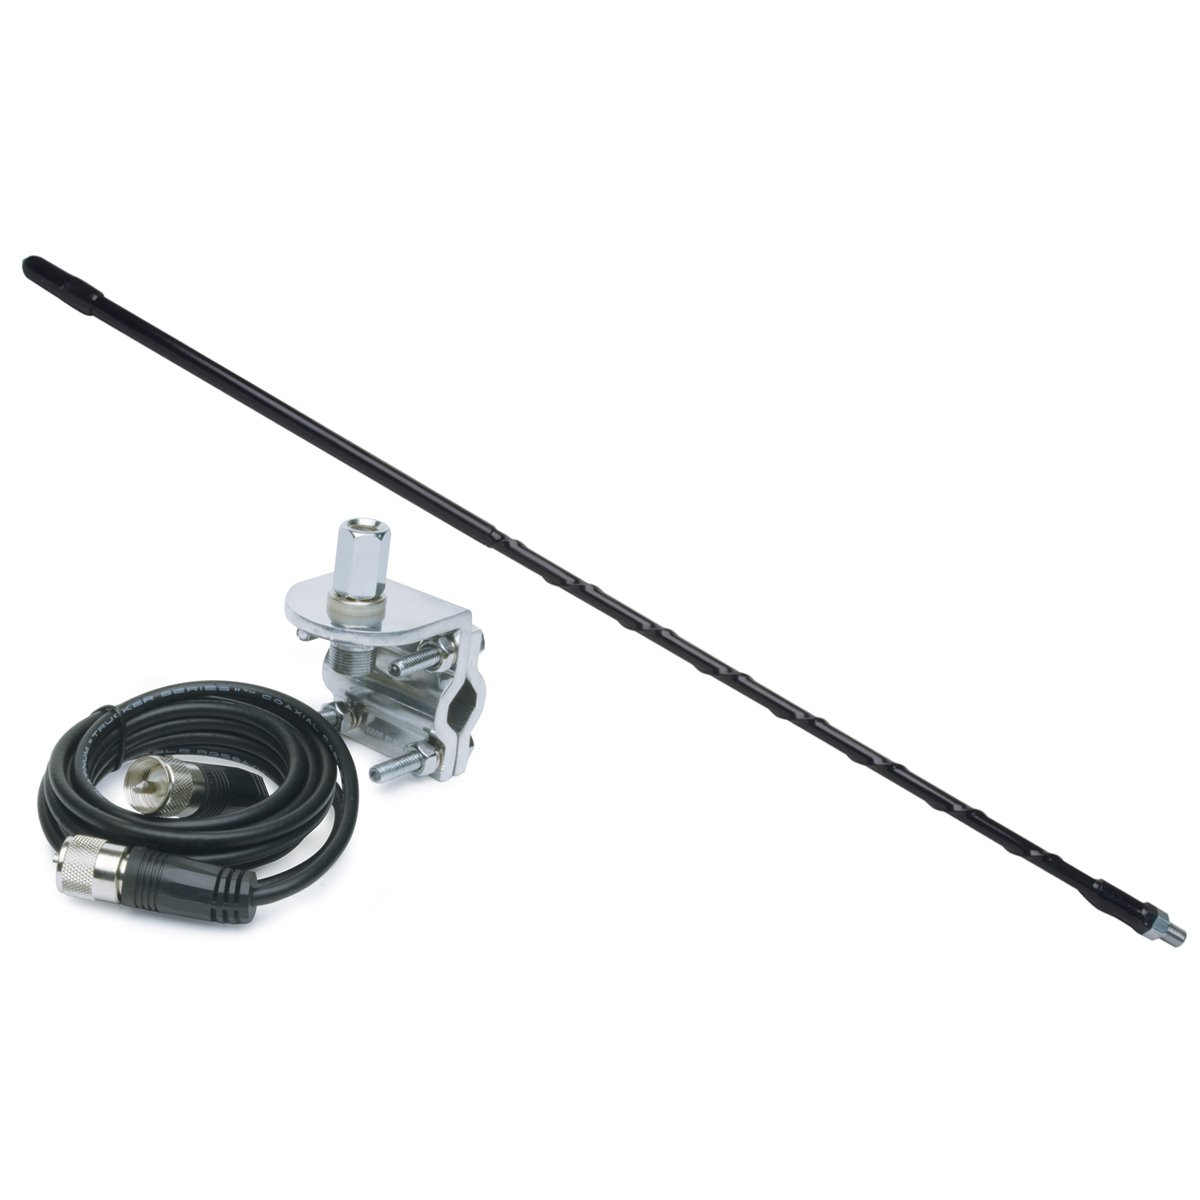 Solarcon 213B Black 3 Fiberglass 750W Top Loaded CB Antenna with Mirror Mount//Cable